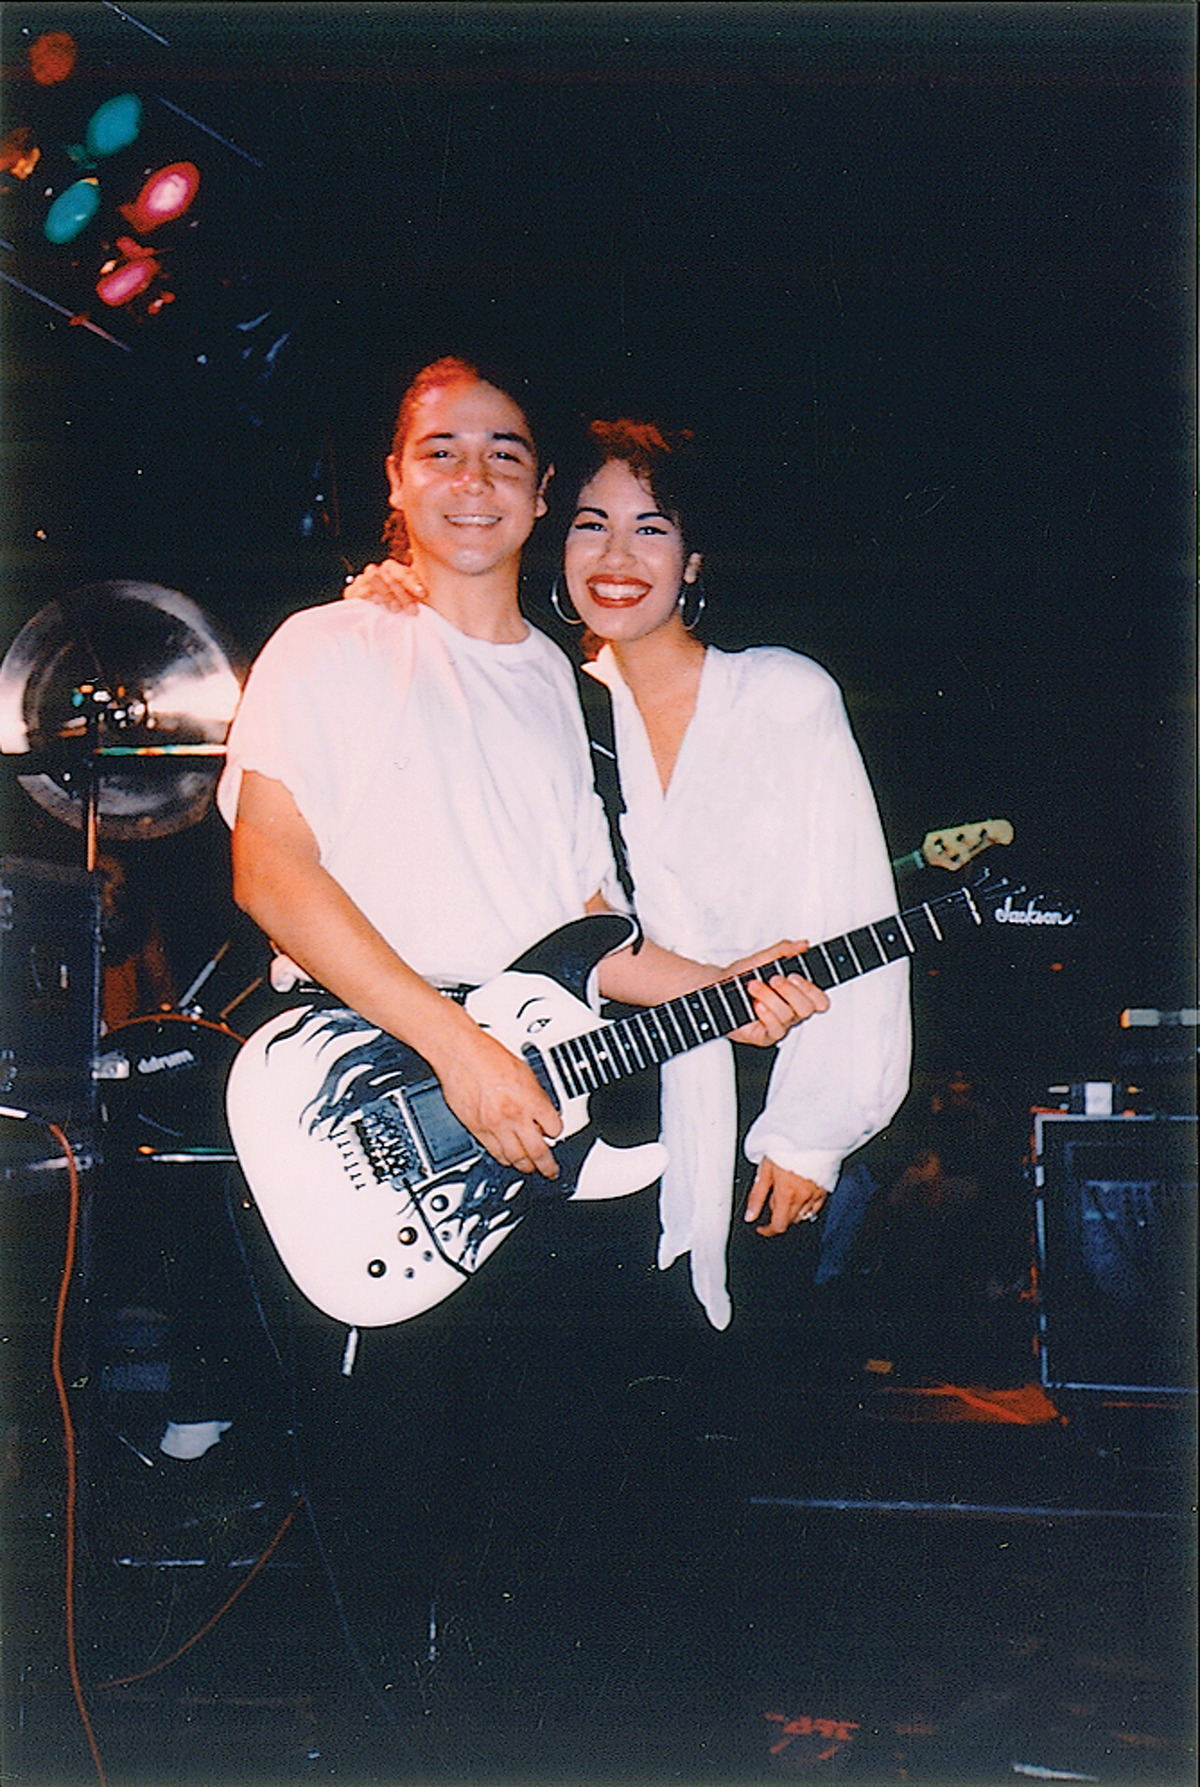 Selena onstage with her husband, guitarist Chris Perez, who has written a book about their life together.